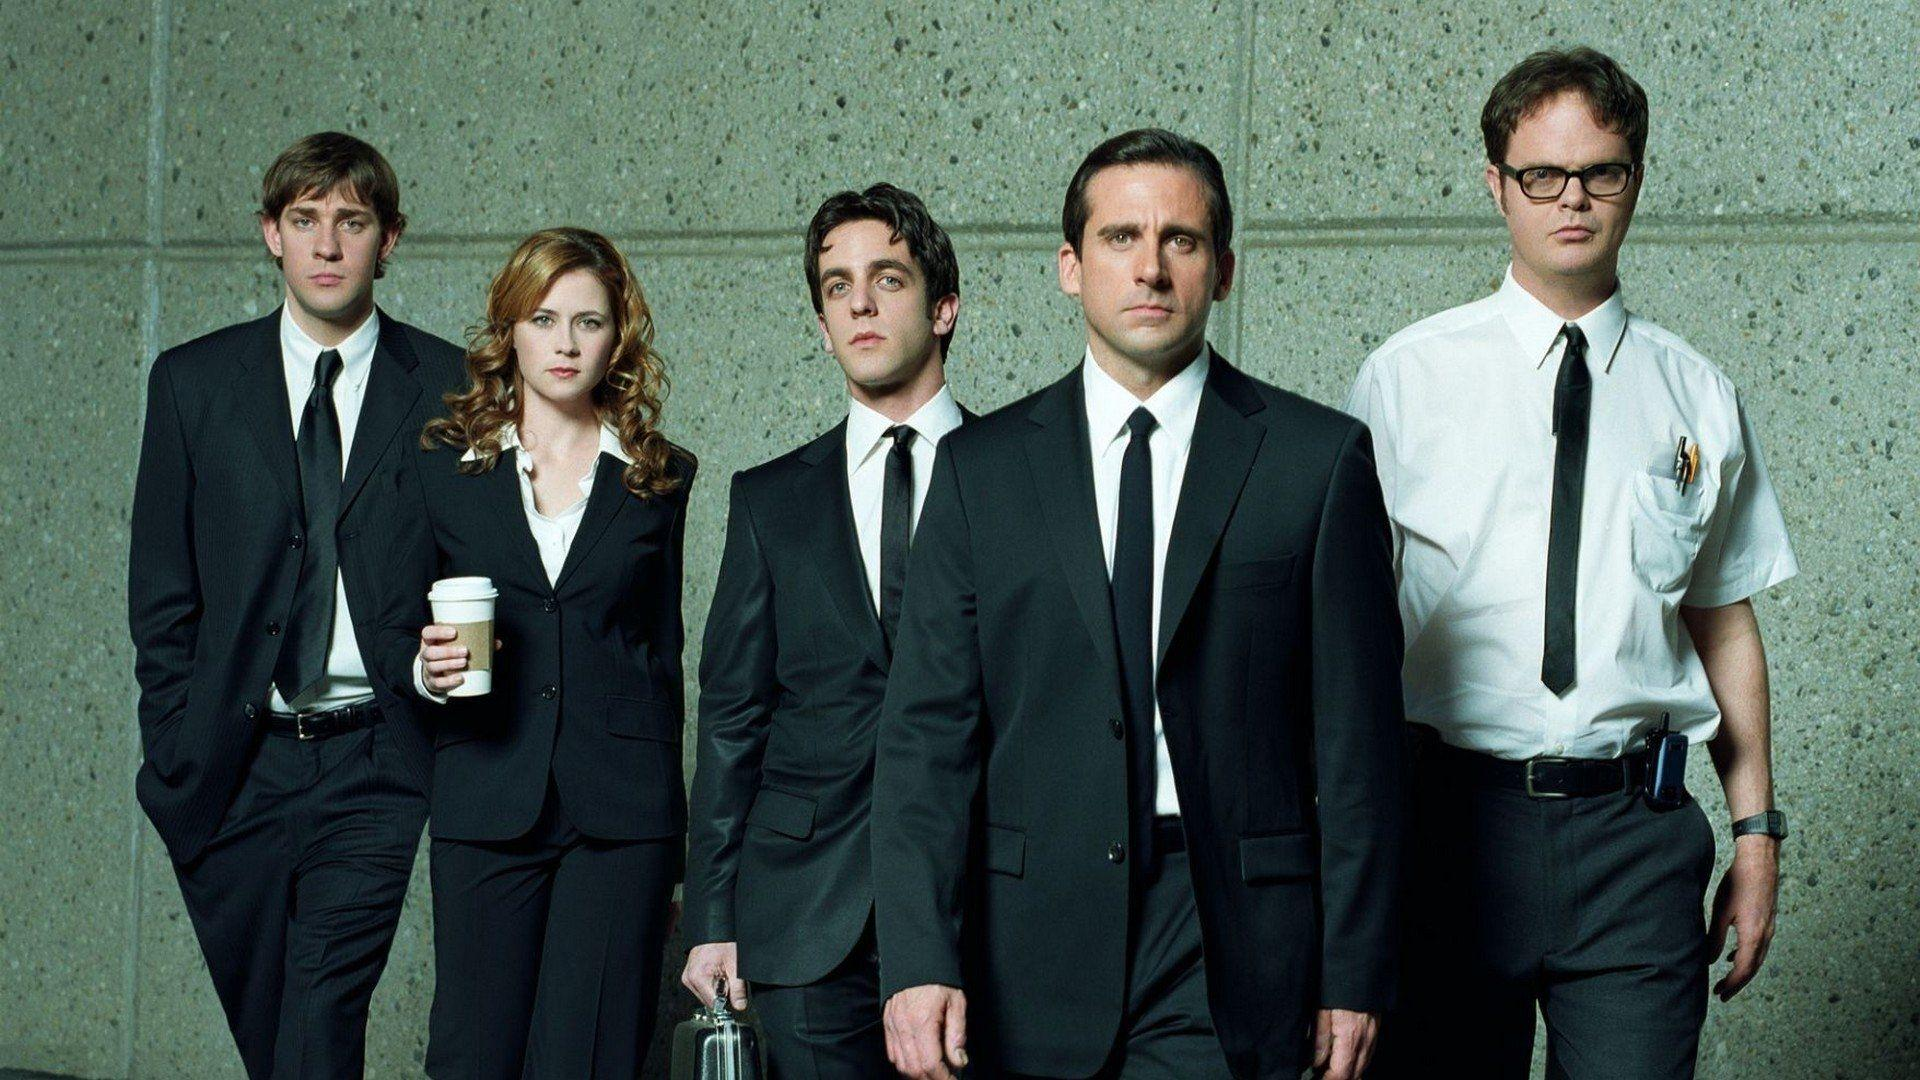 The Office Wallpapers - Wallpaper Cave